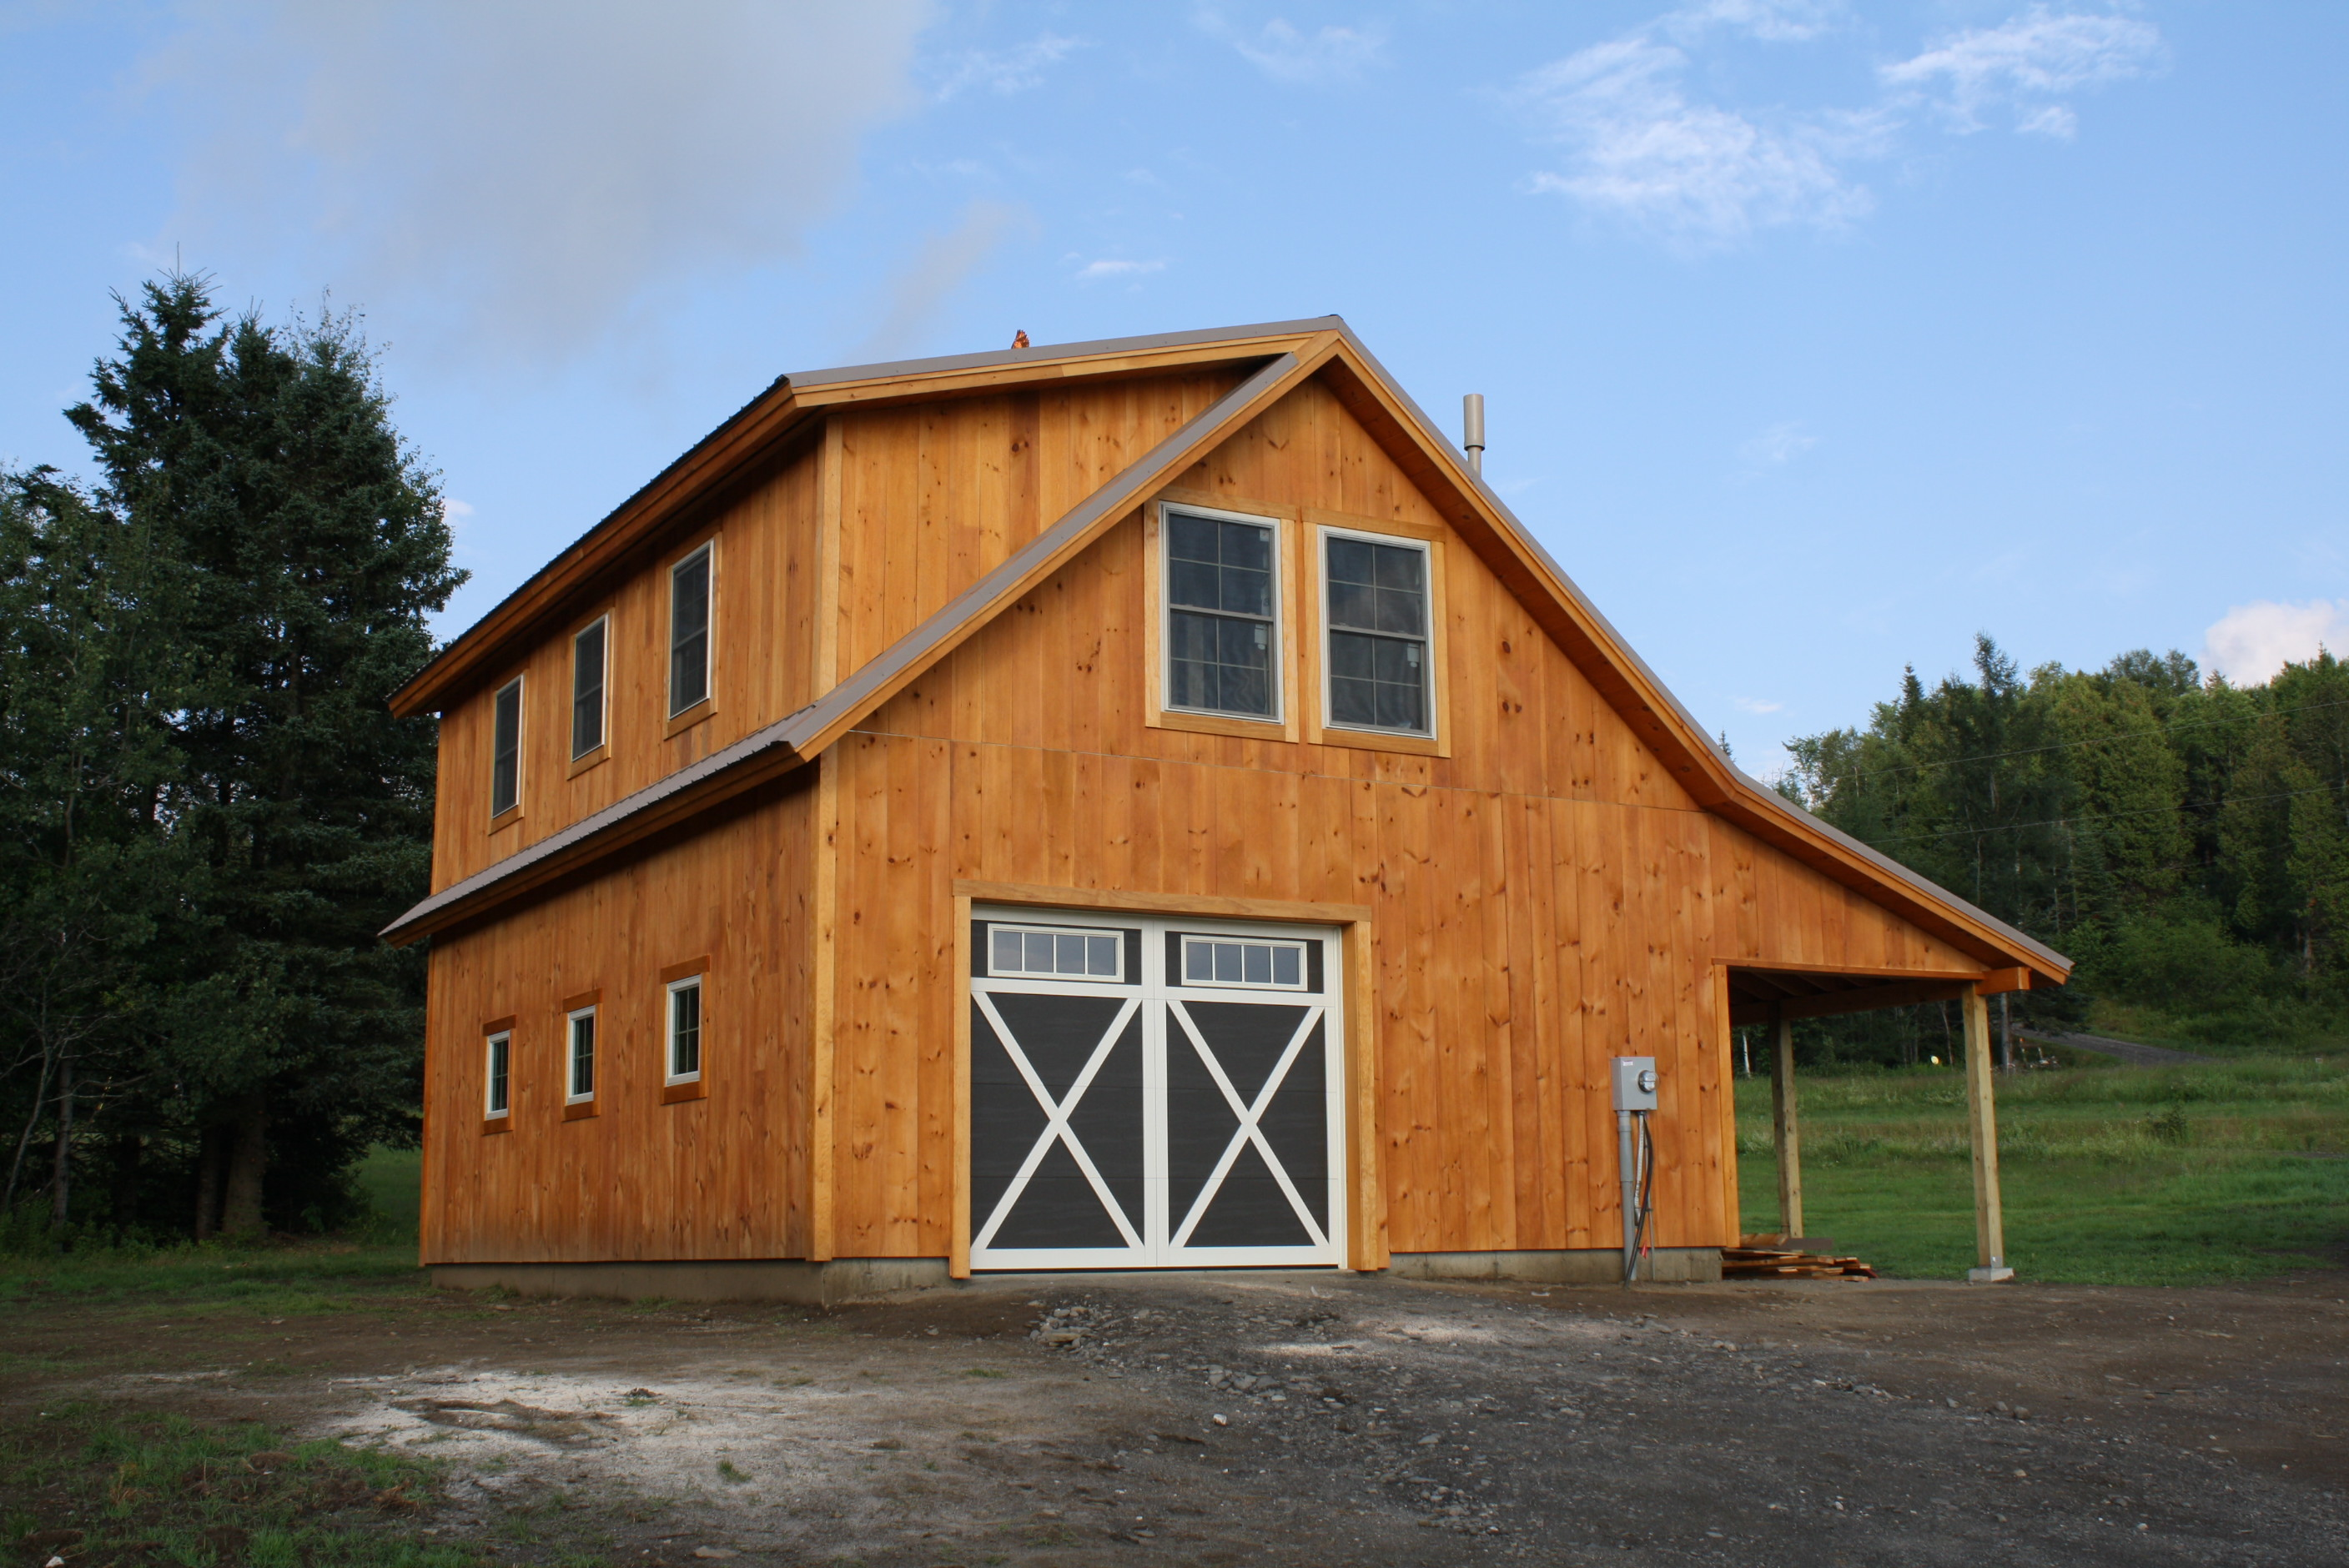 Custom conventionally framed barn clarksville nh for Custom barn homes